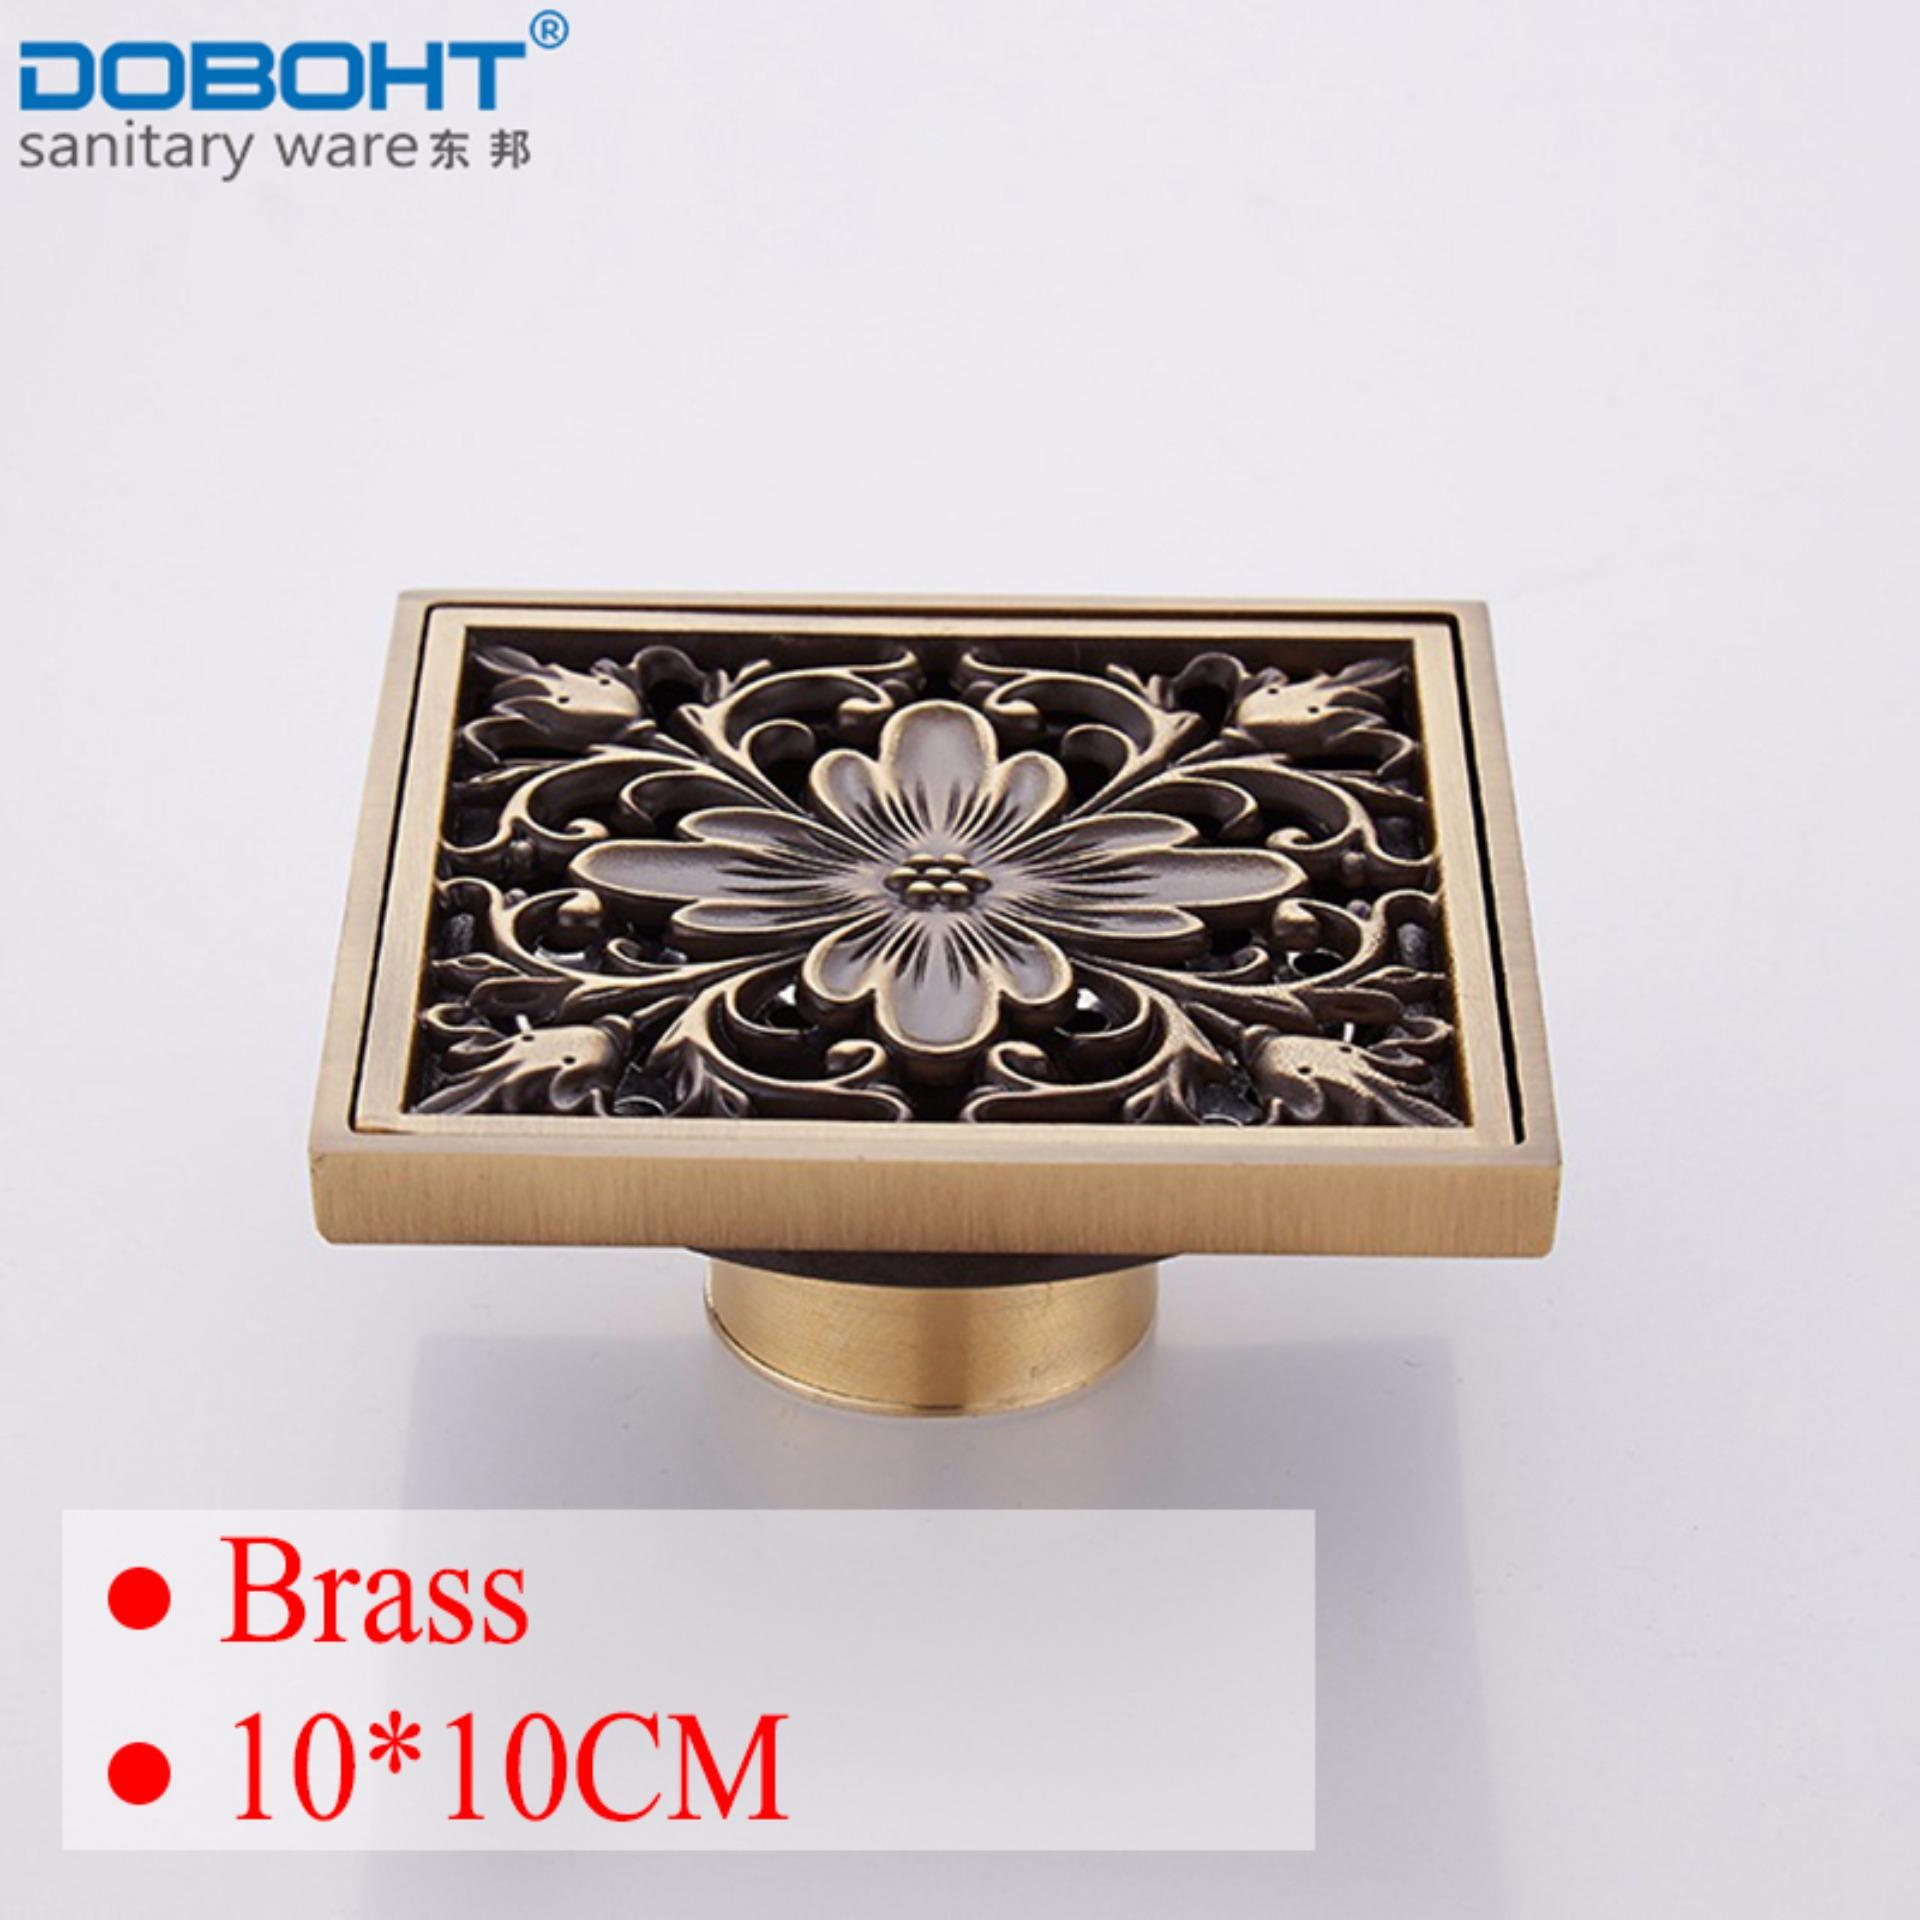 Doboht Brass Bathroom 10Cm 10Cm Floor Drain Antique Intl On China